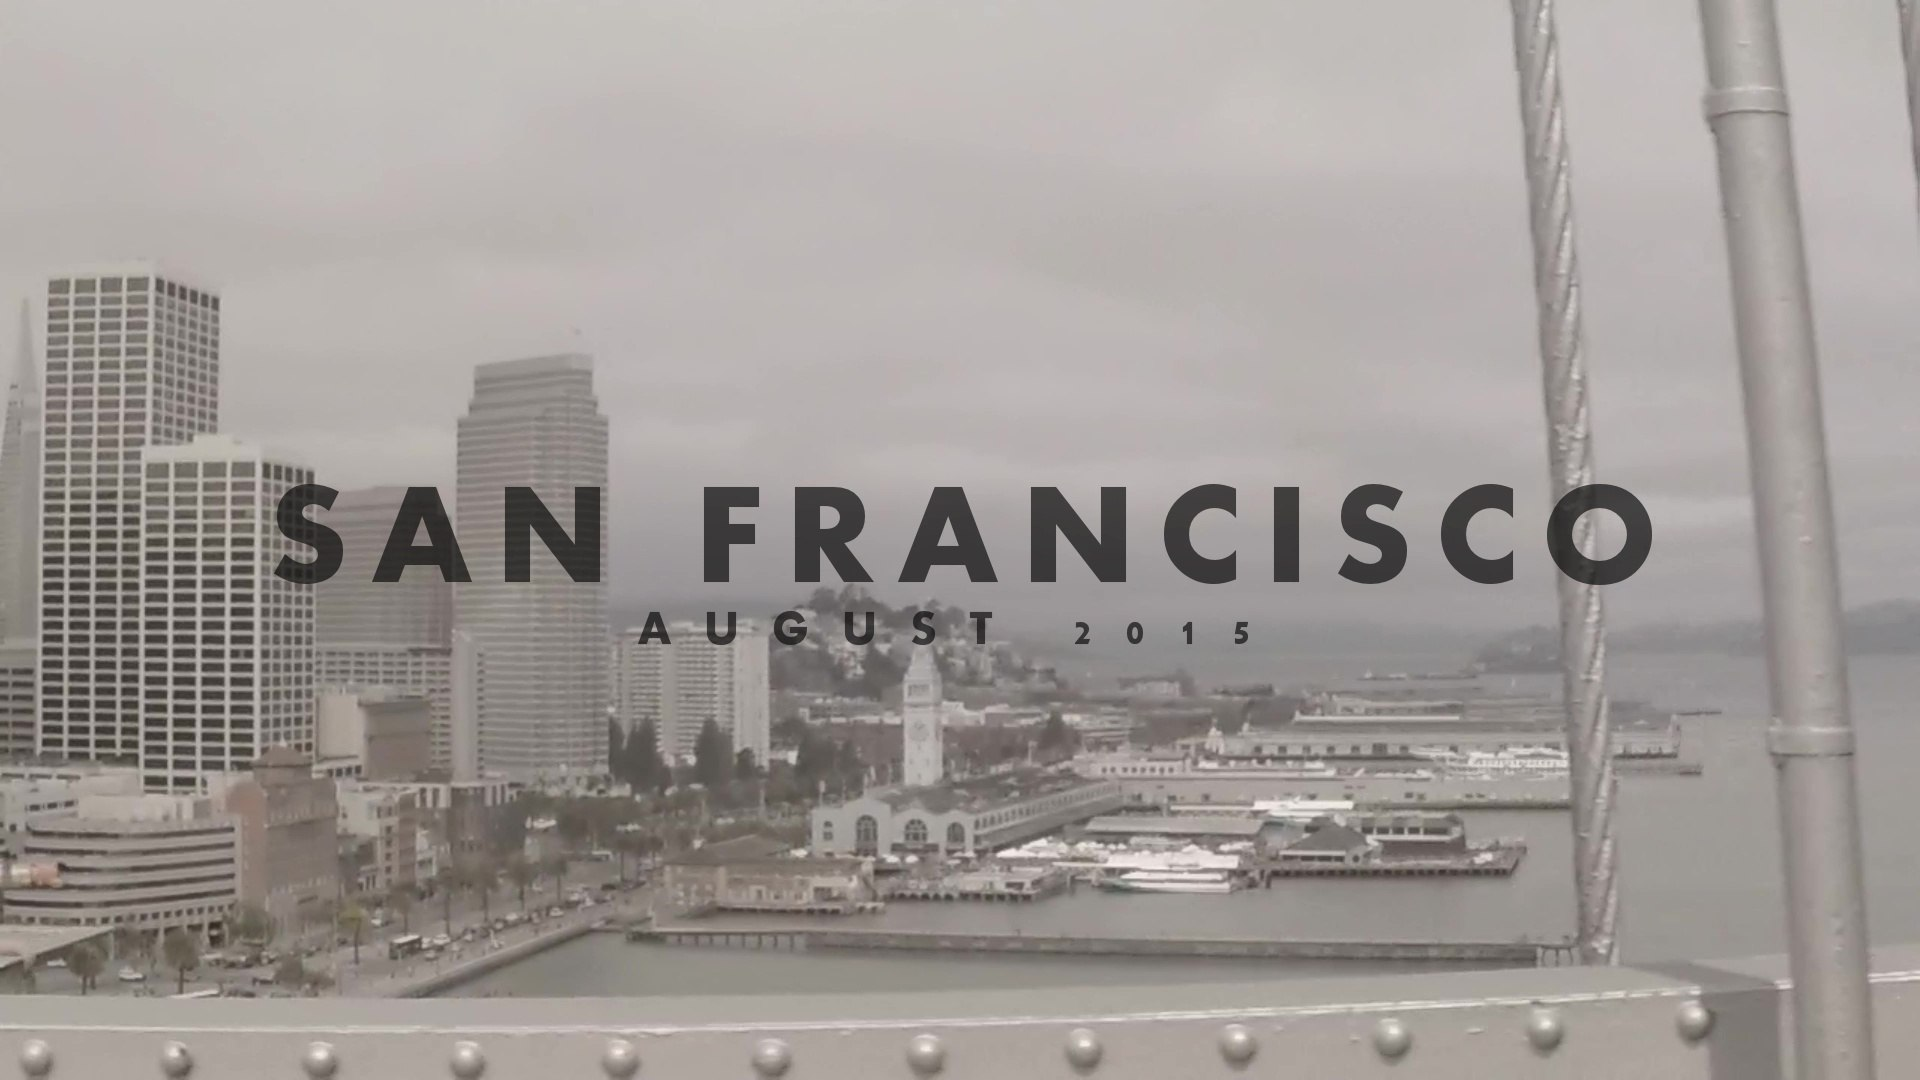 2015 August San Francisco Family Friends Trip Visiting Like Tourists 1080HD 60fps! (GoPro Hero4 Blac